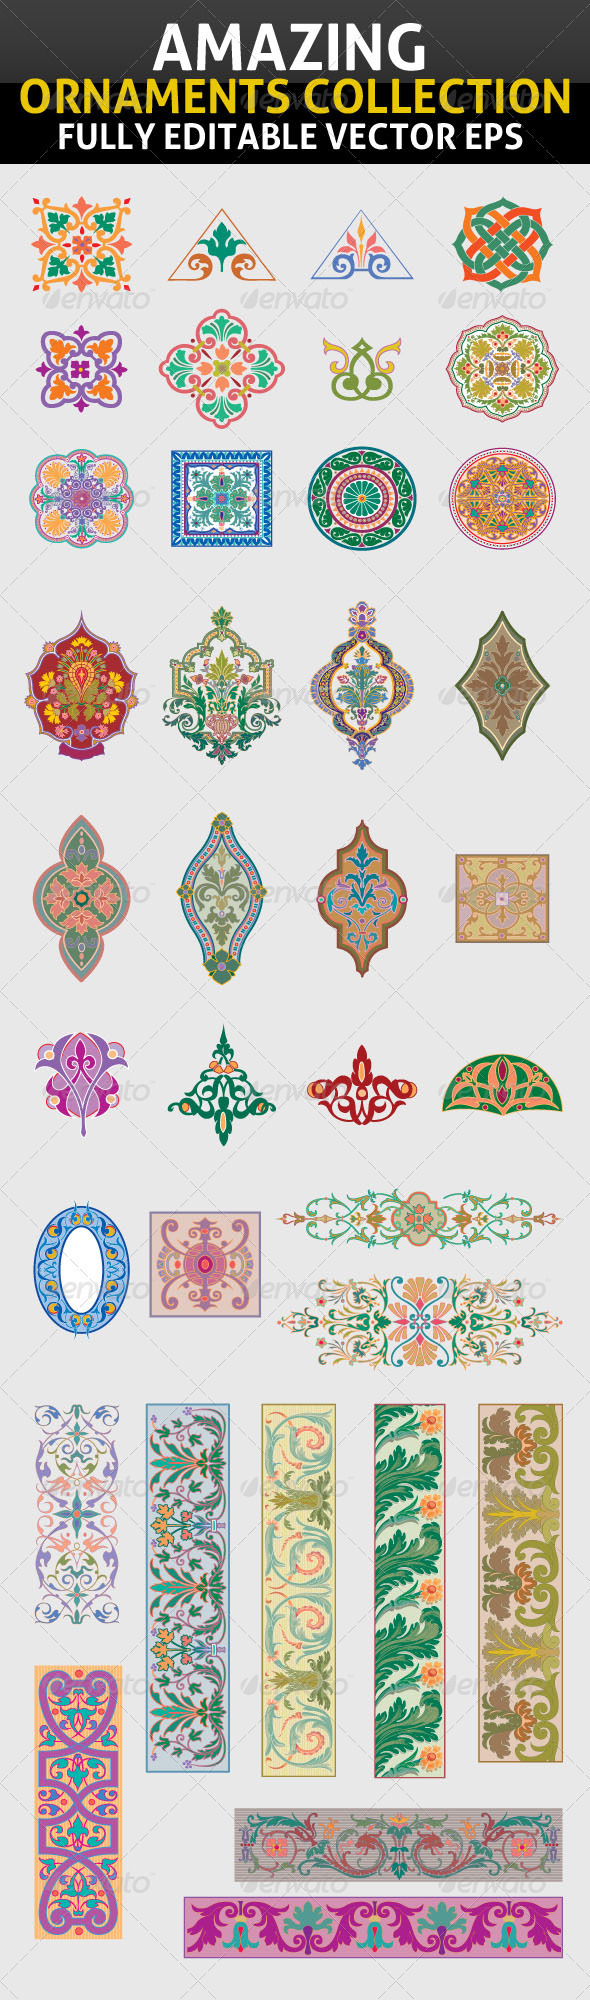 GraphicRiver Amazing Ornaments Collection 3703087